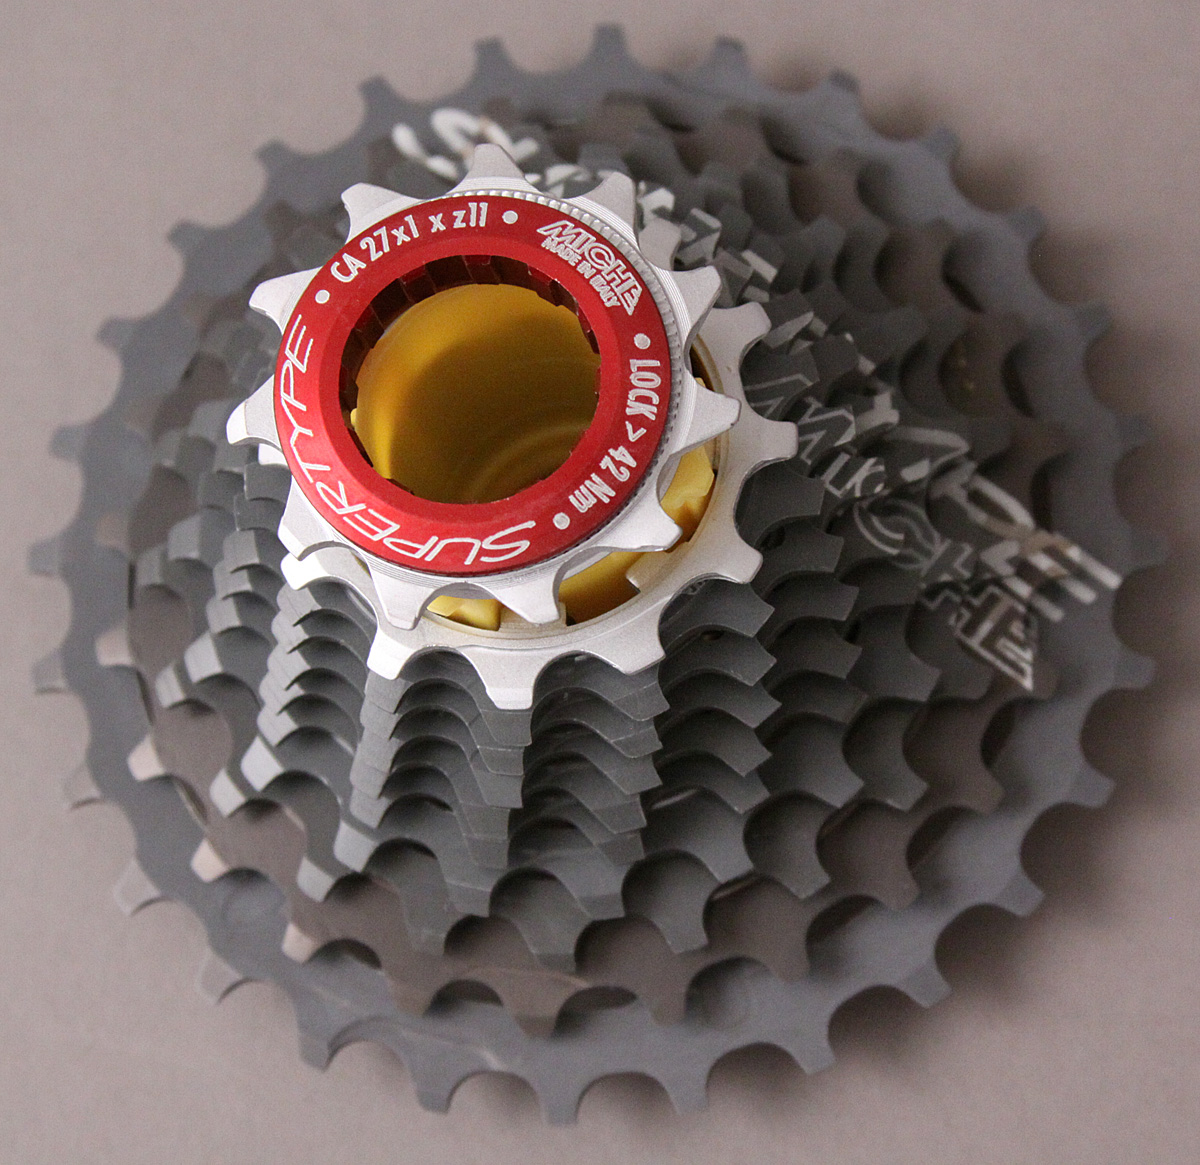 Miche Supertype Cassette 11-28 Campagnolo Spline For Race Day!